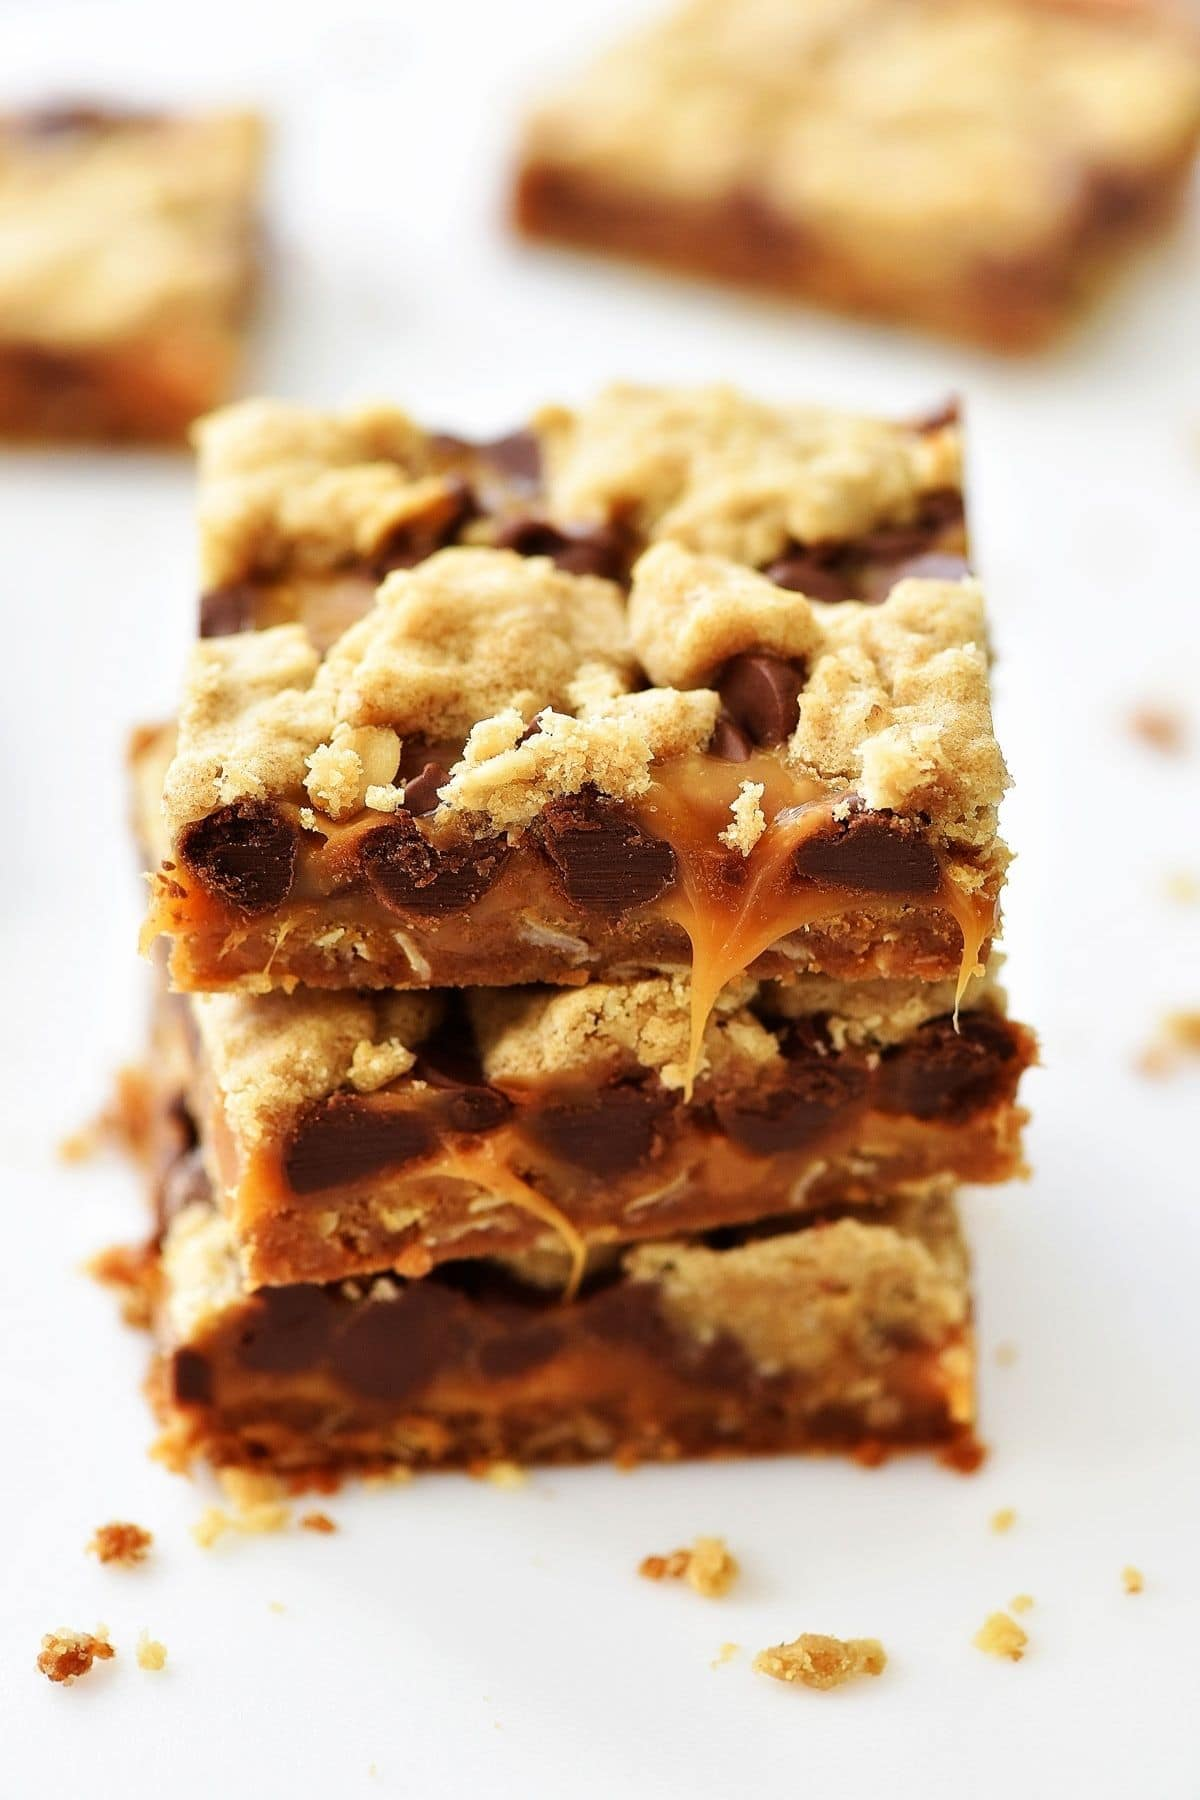 Cookie bar with caramel in center on white table